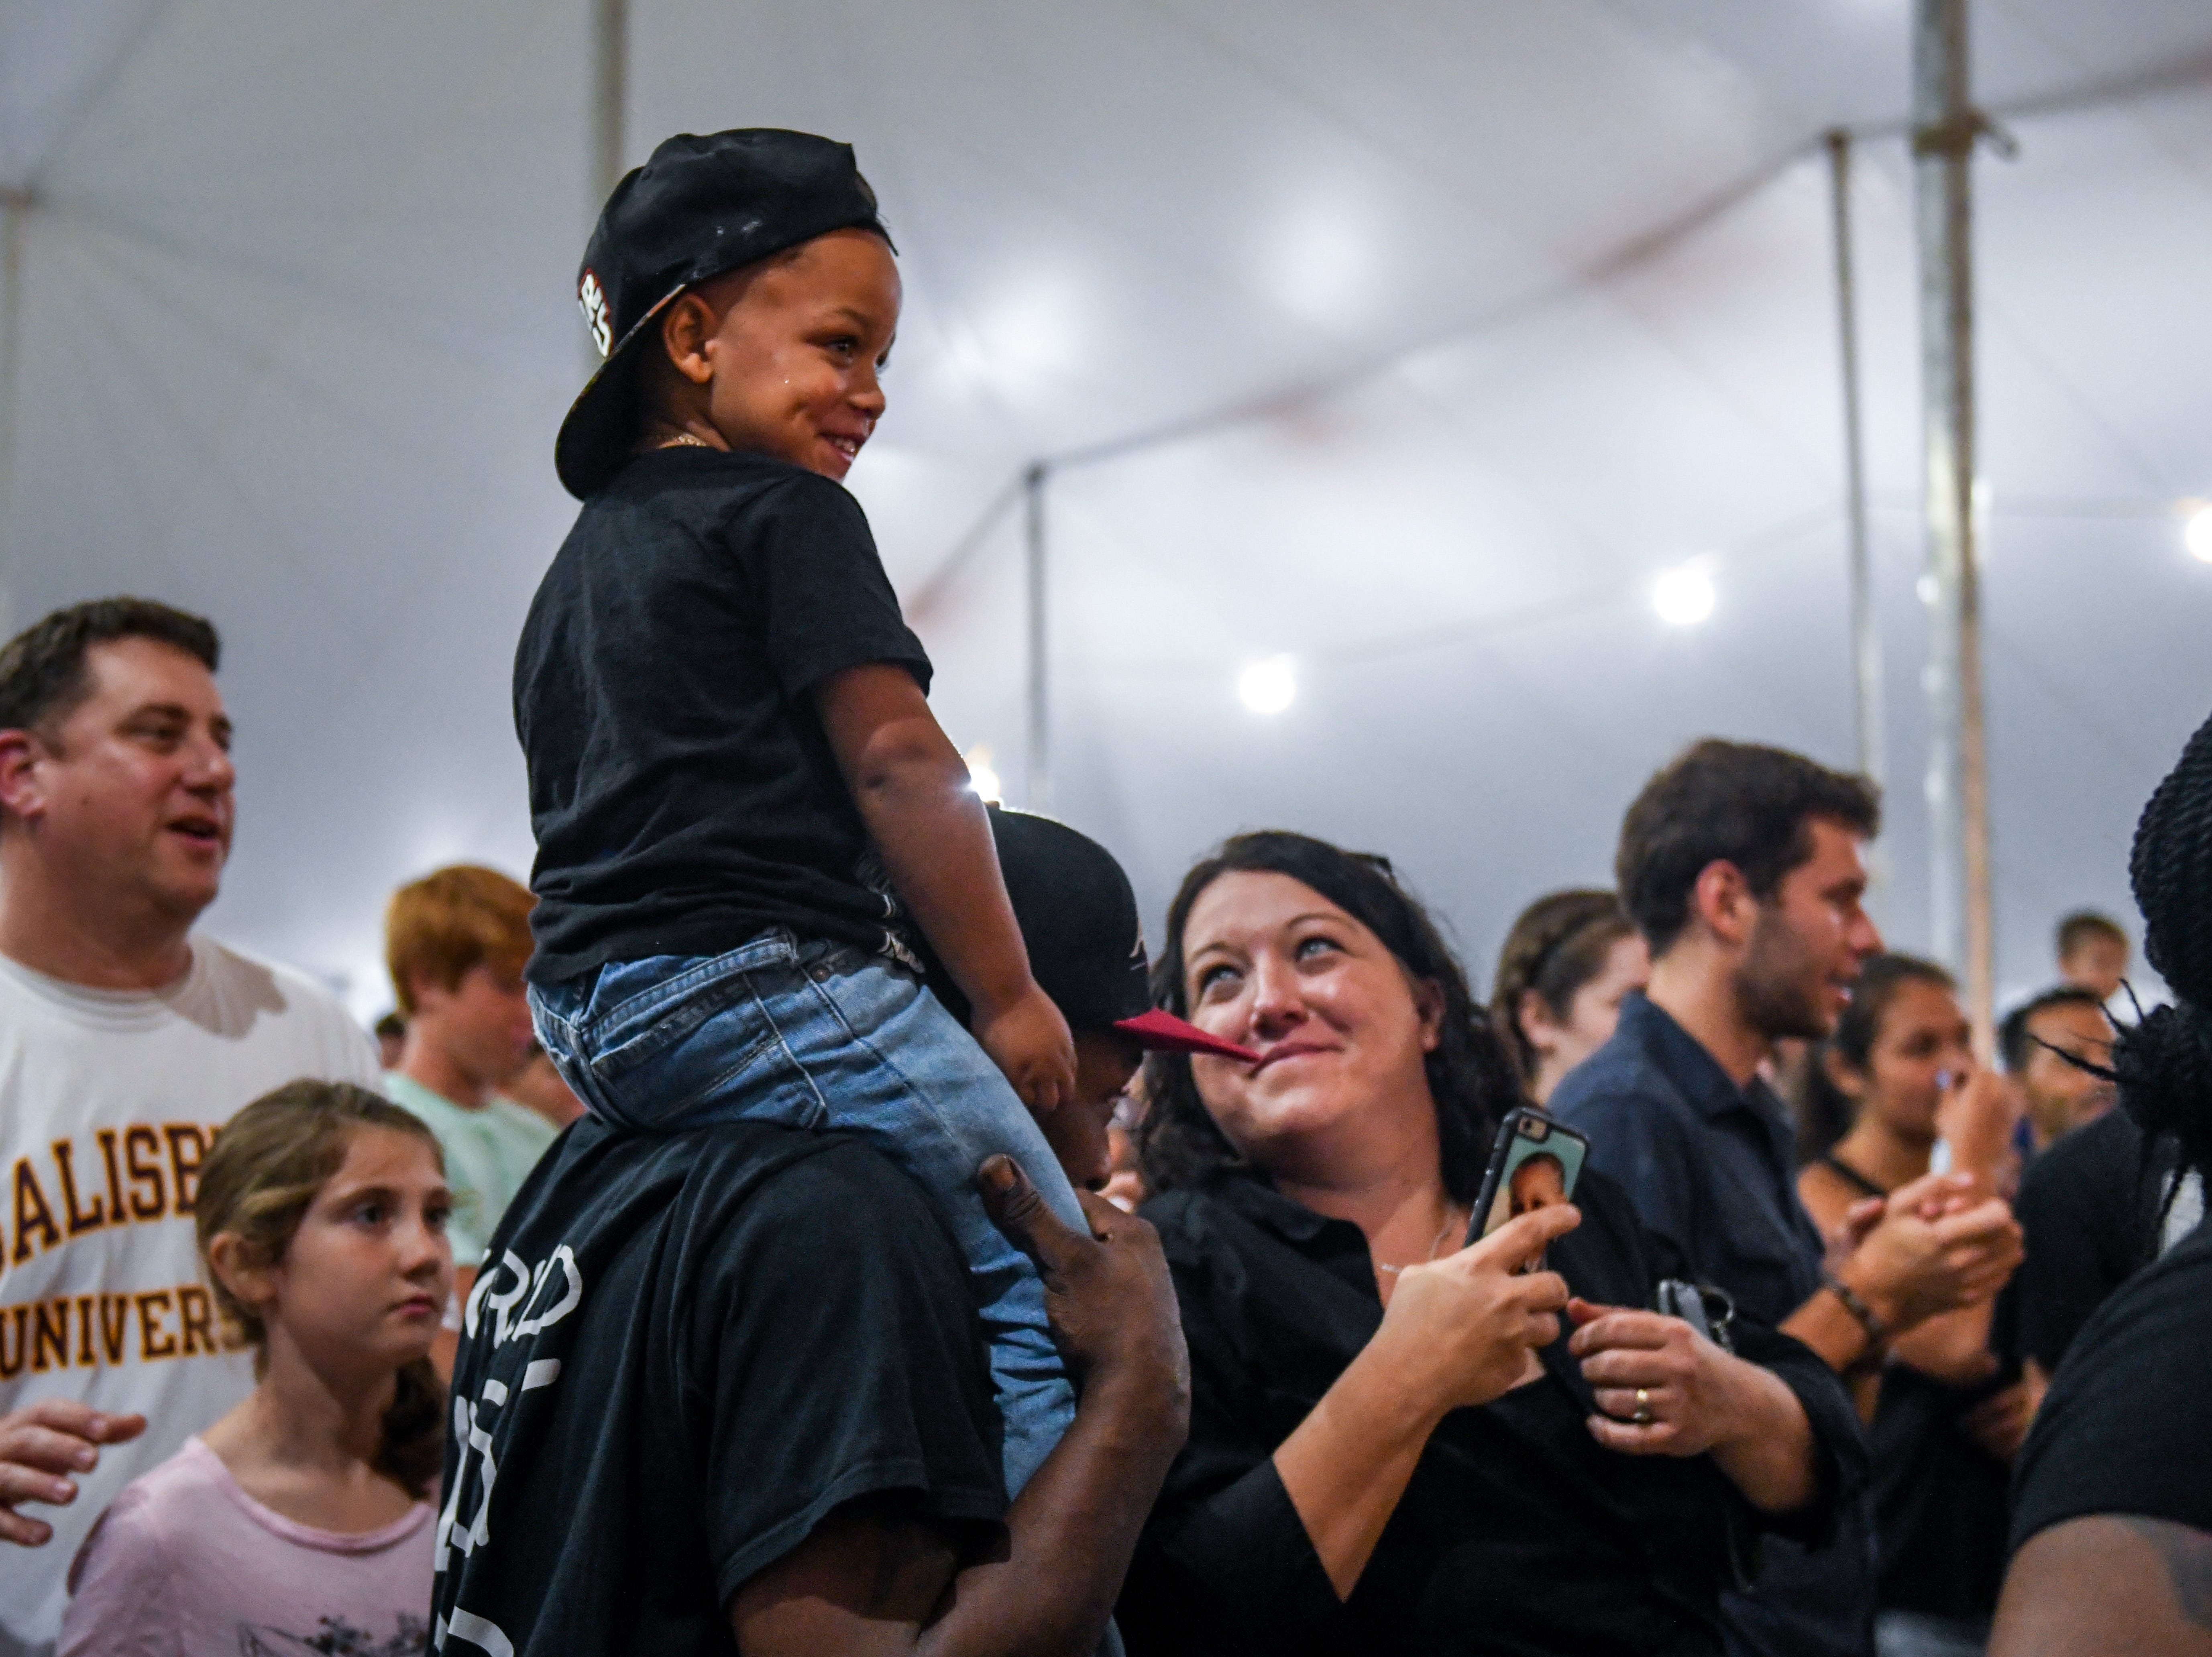 Jude Matthews gets a better view atop his father James Matthew's shoulders at Rahzel's performance at the National Folk Festival in Salisbury on Saturday, Sept. 8.